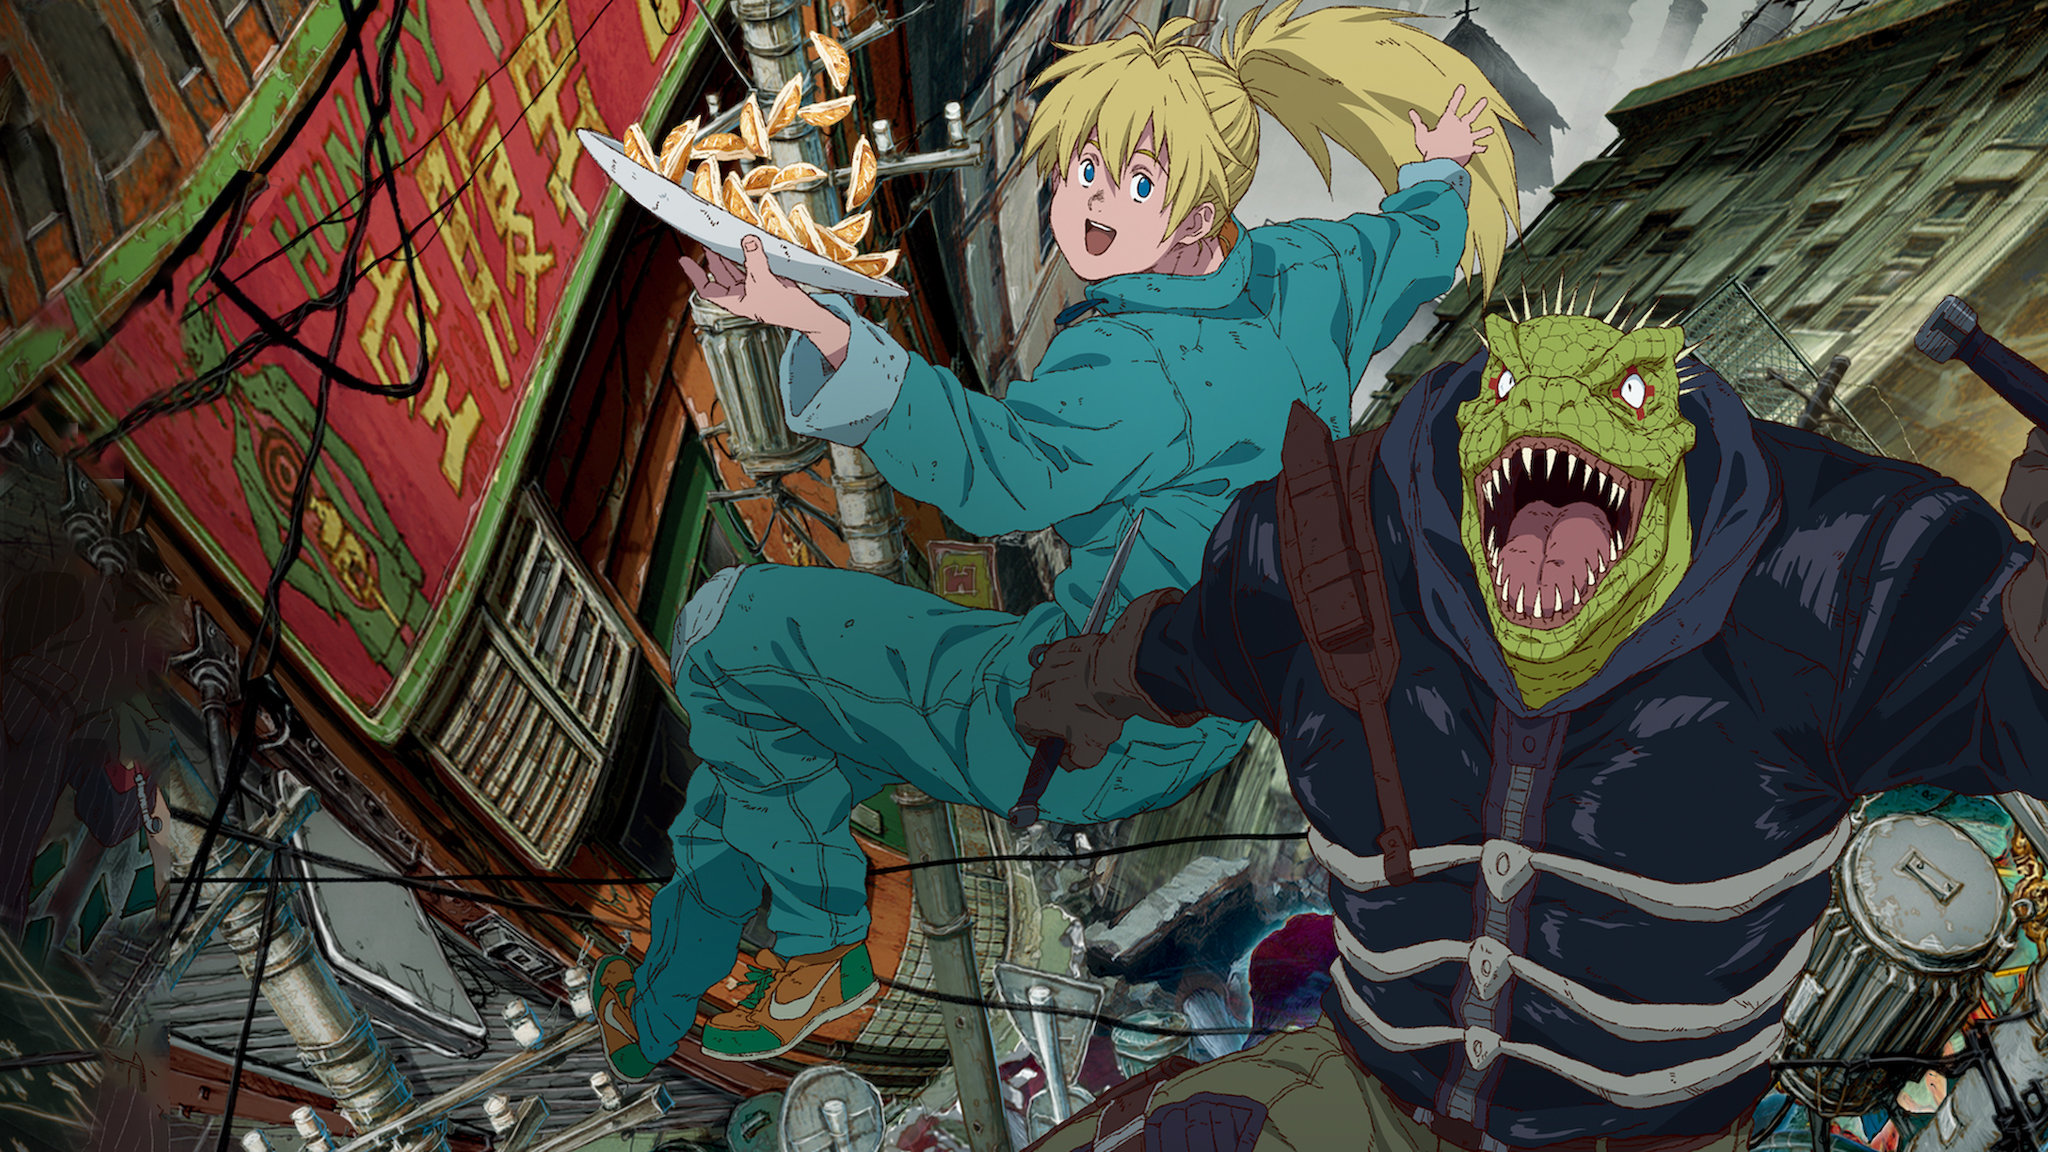 Best Anime of 2020 - Dorohedoro